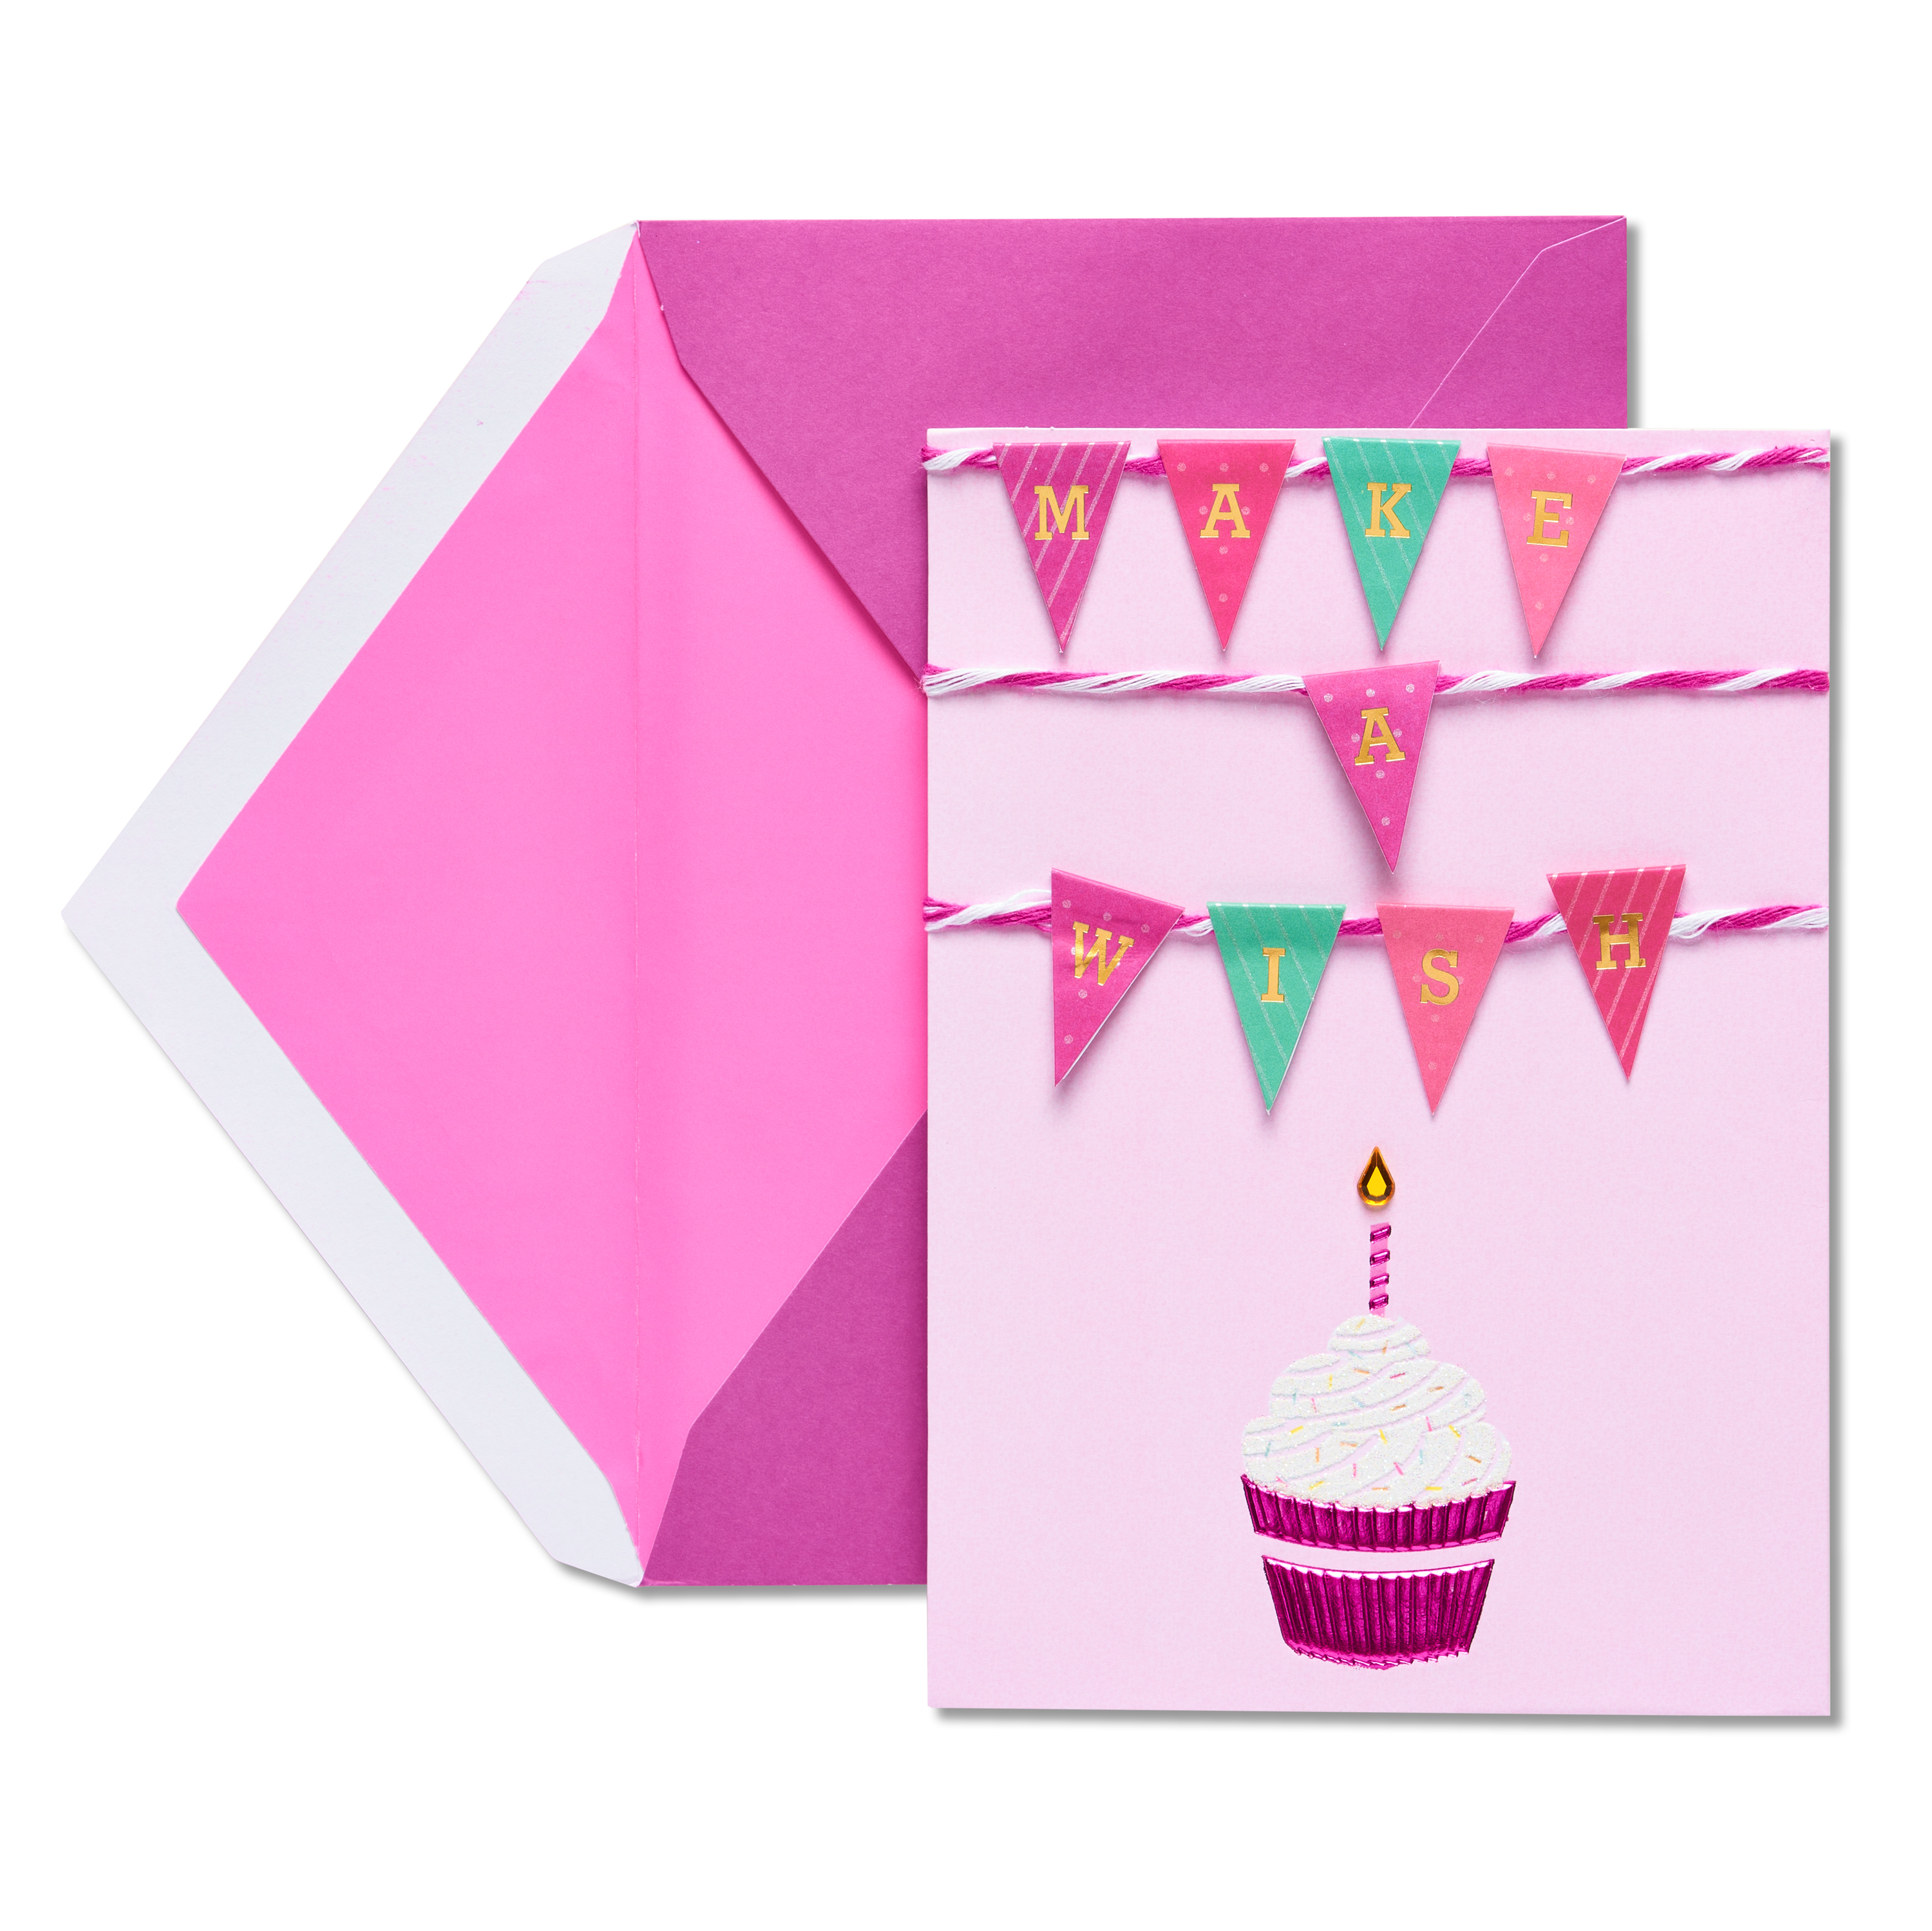 American Greetings Cupcake Birthday Card with Rhinestone